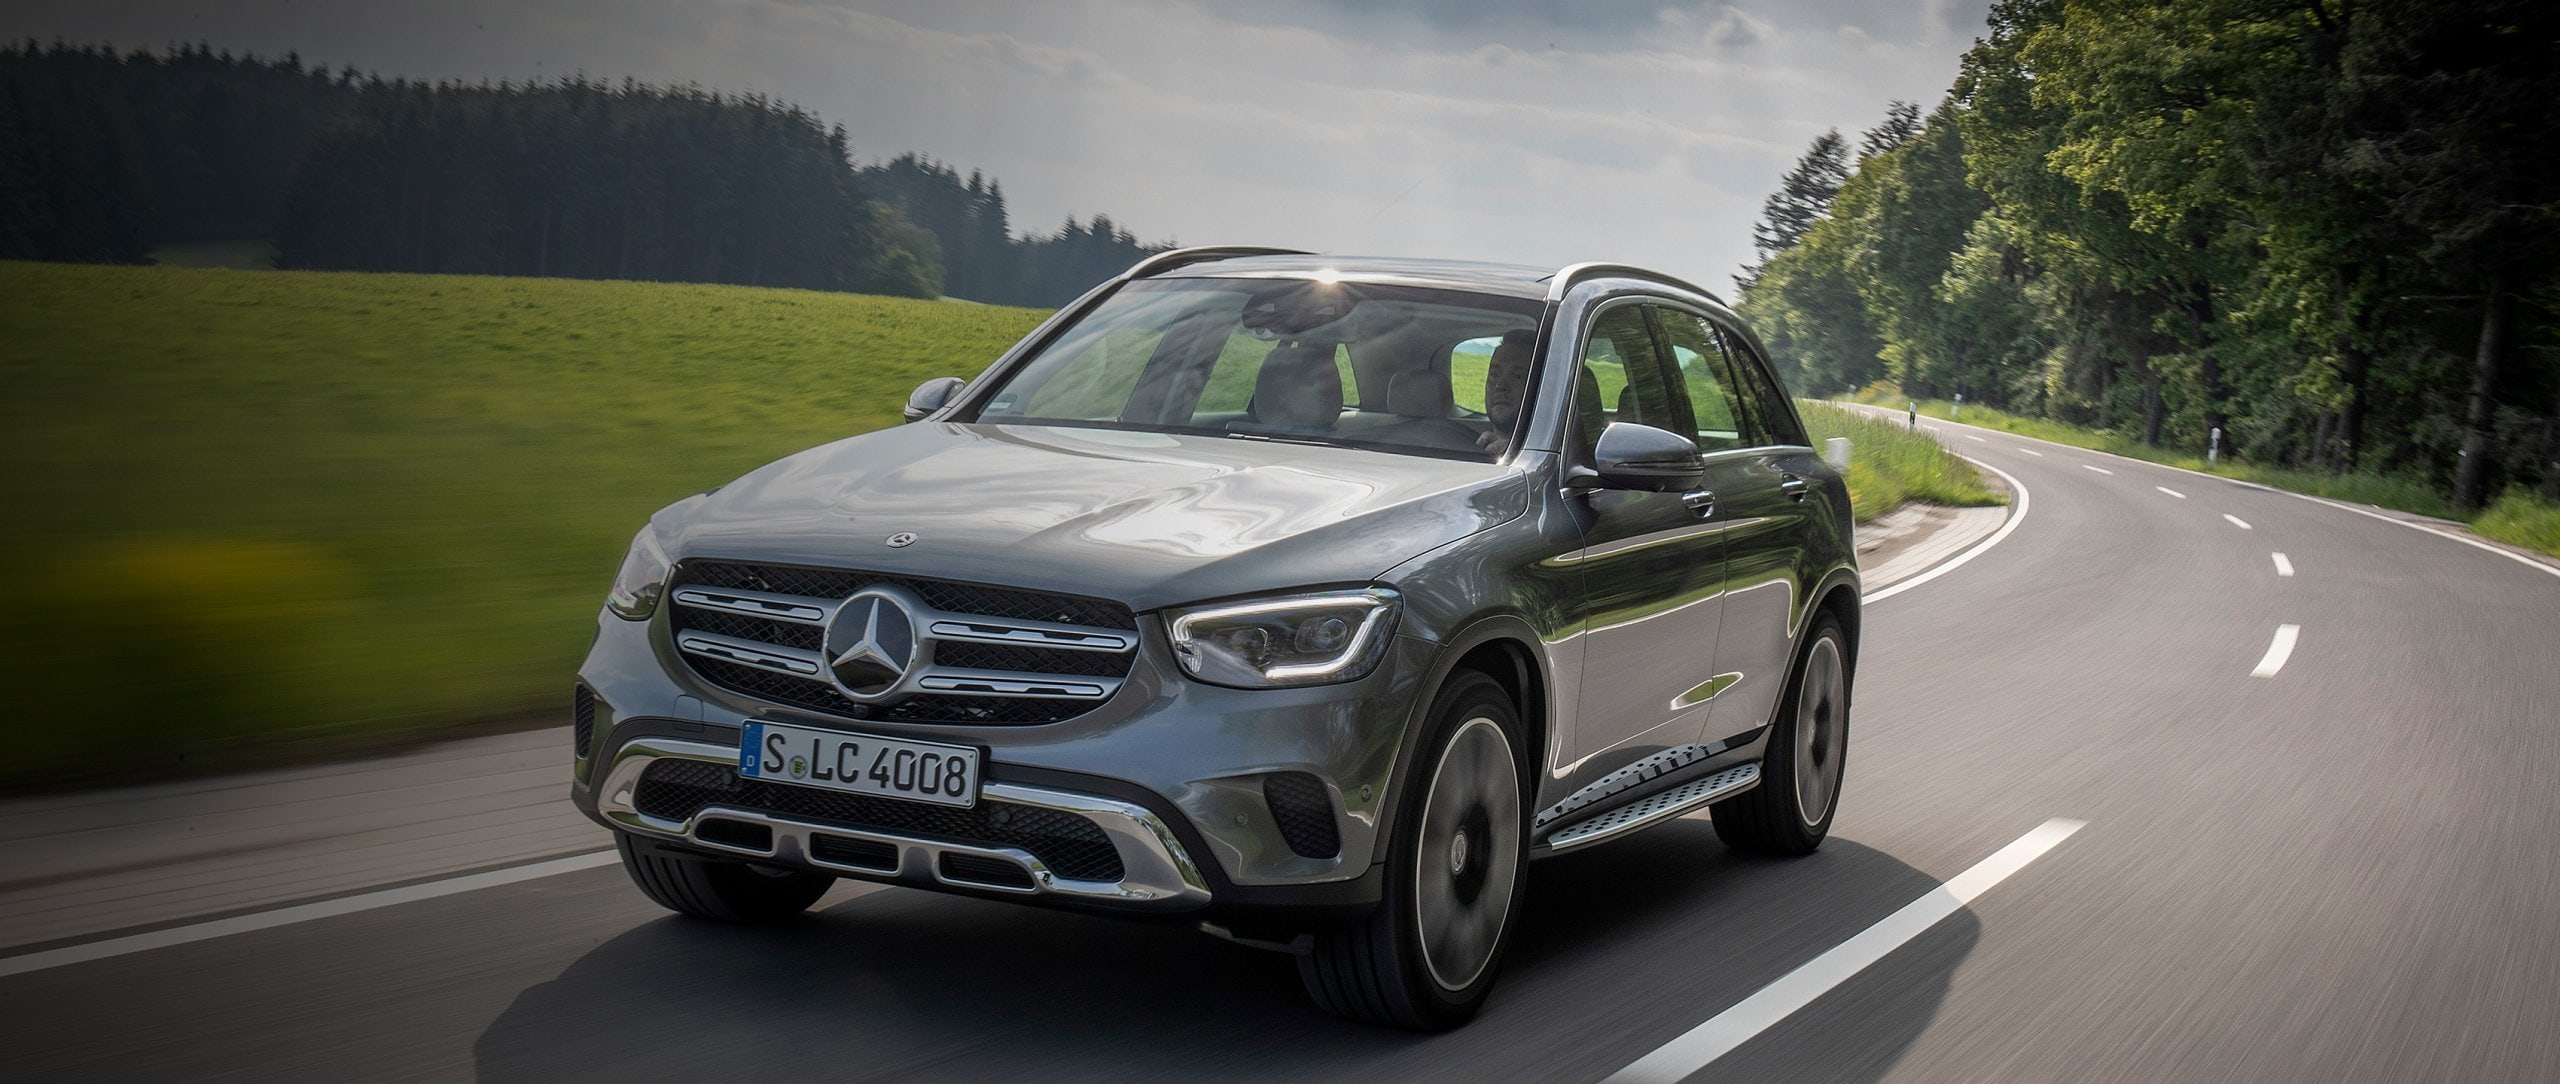 The Mercedes-Benz GLC driving on a country road.